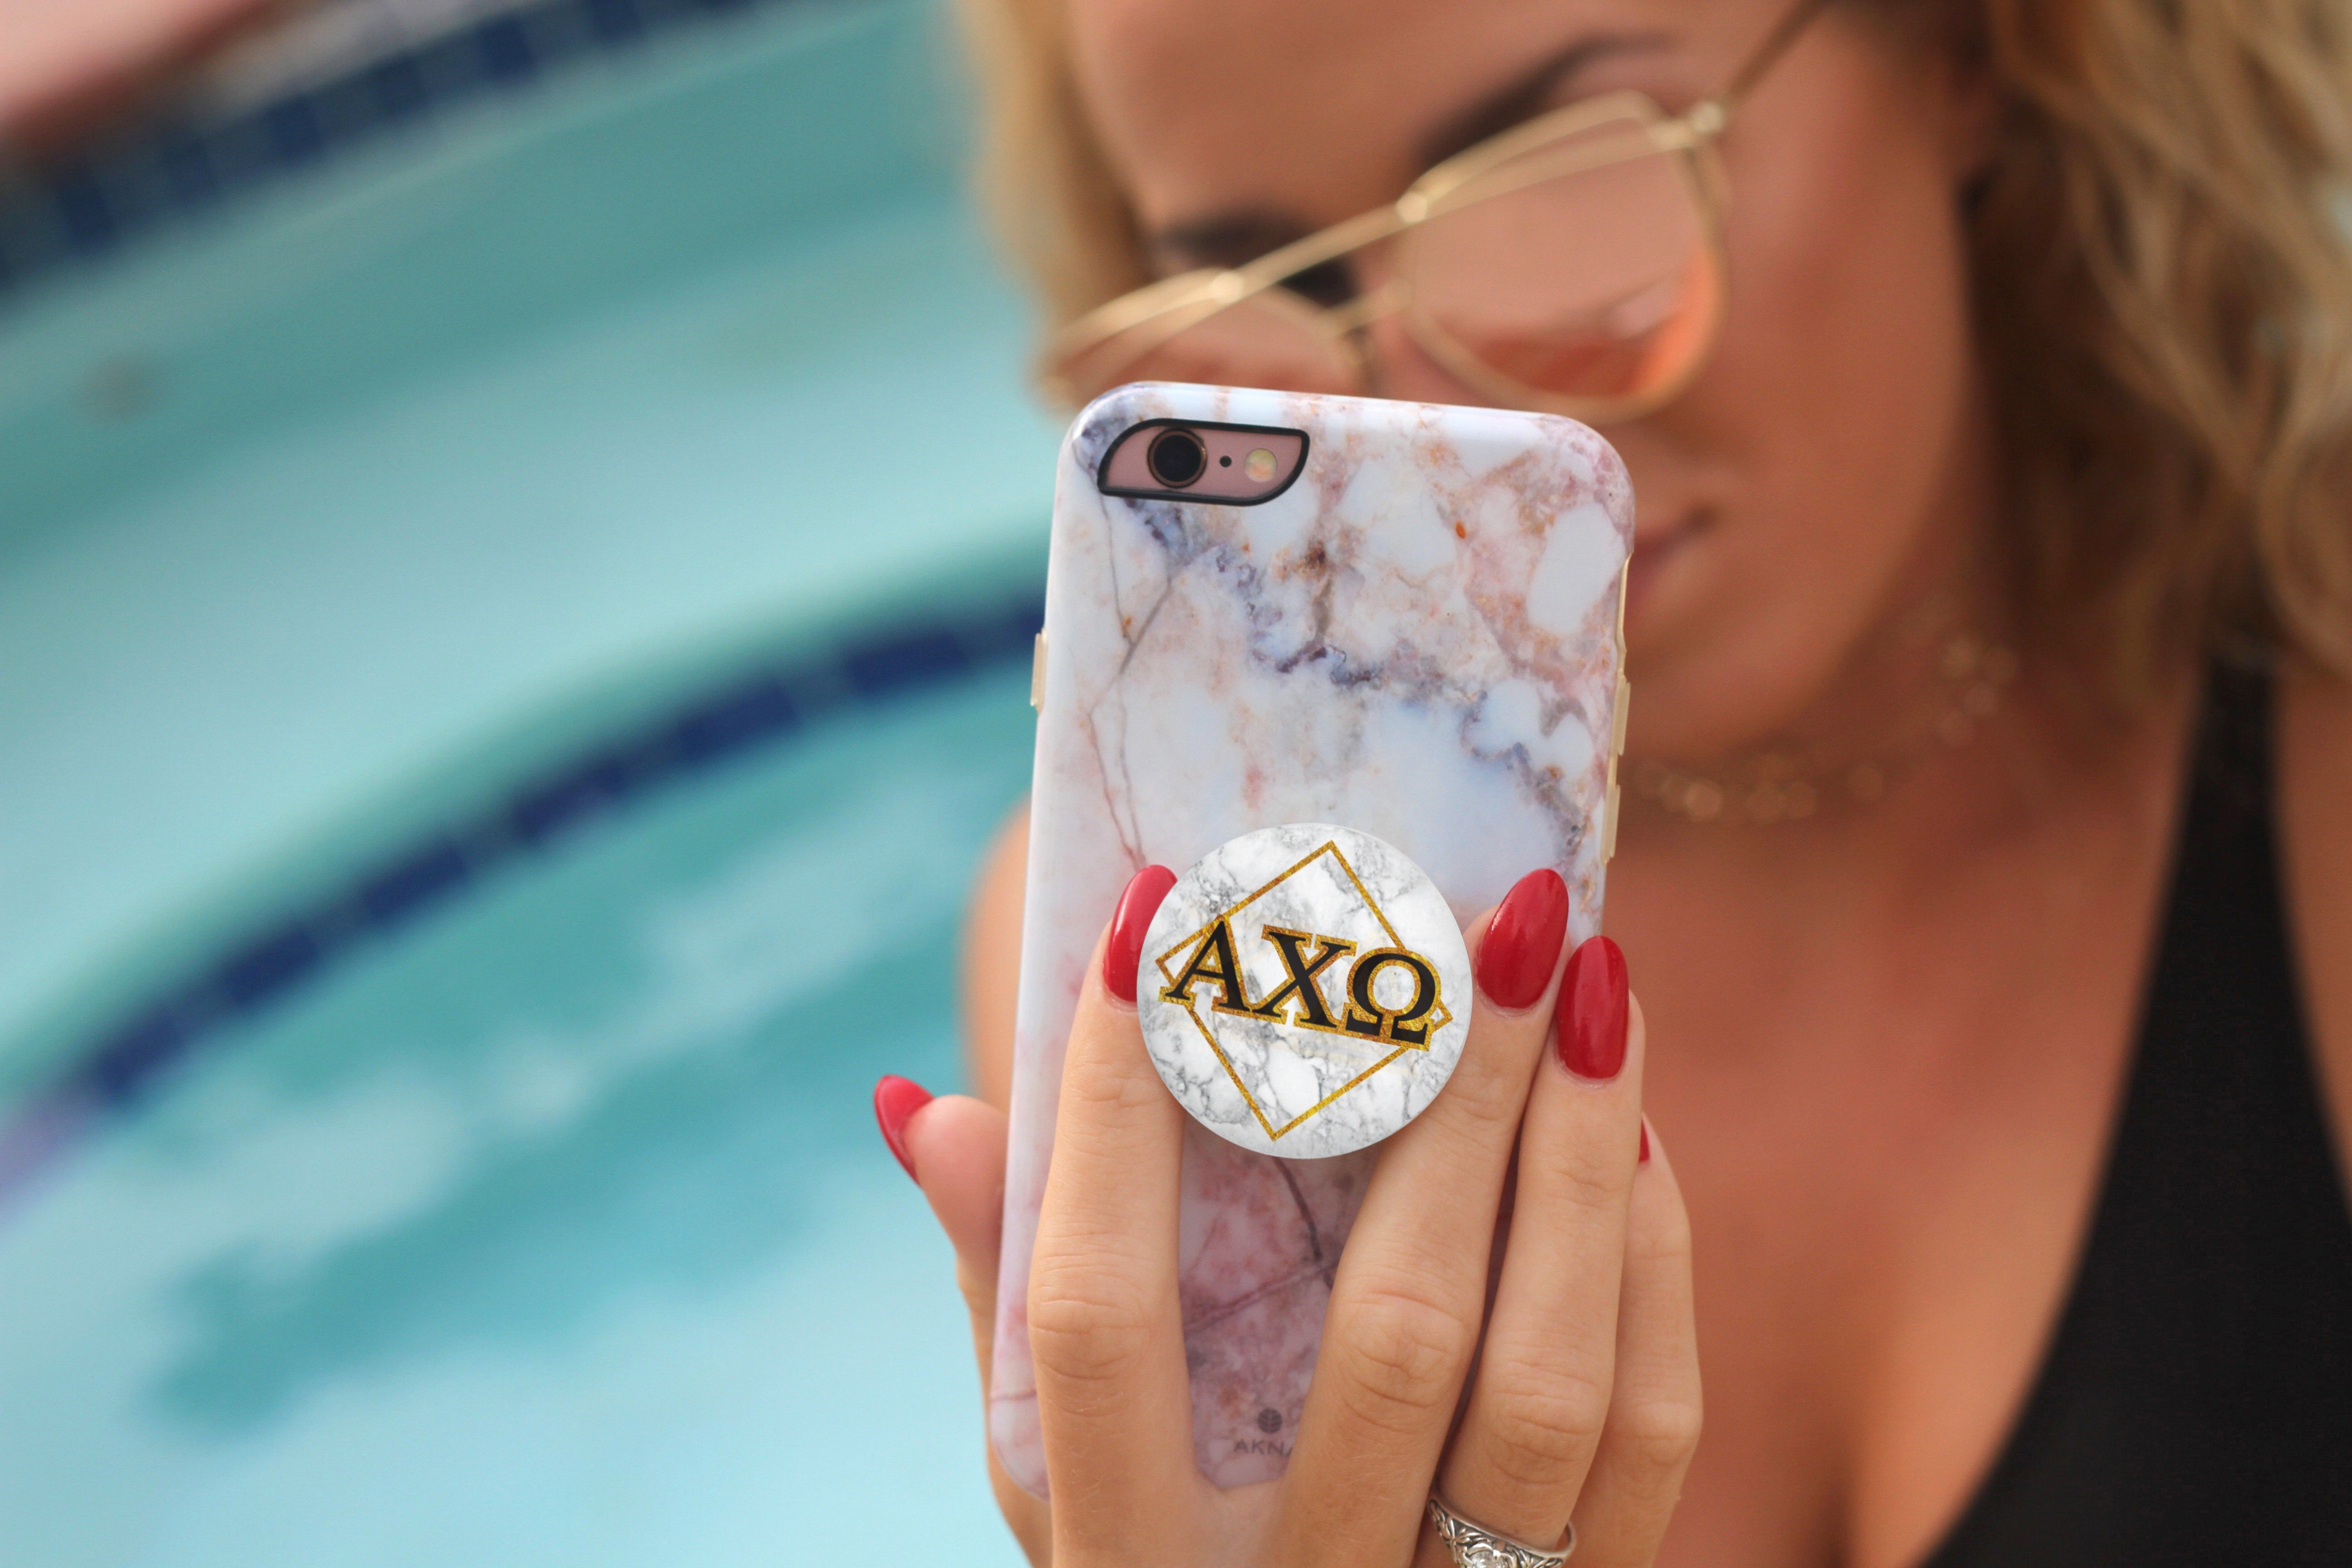 Never drop your phone take better selfies and prop your phone with new alpha chi omega popsockets an official popsockets sorority shop collab